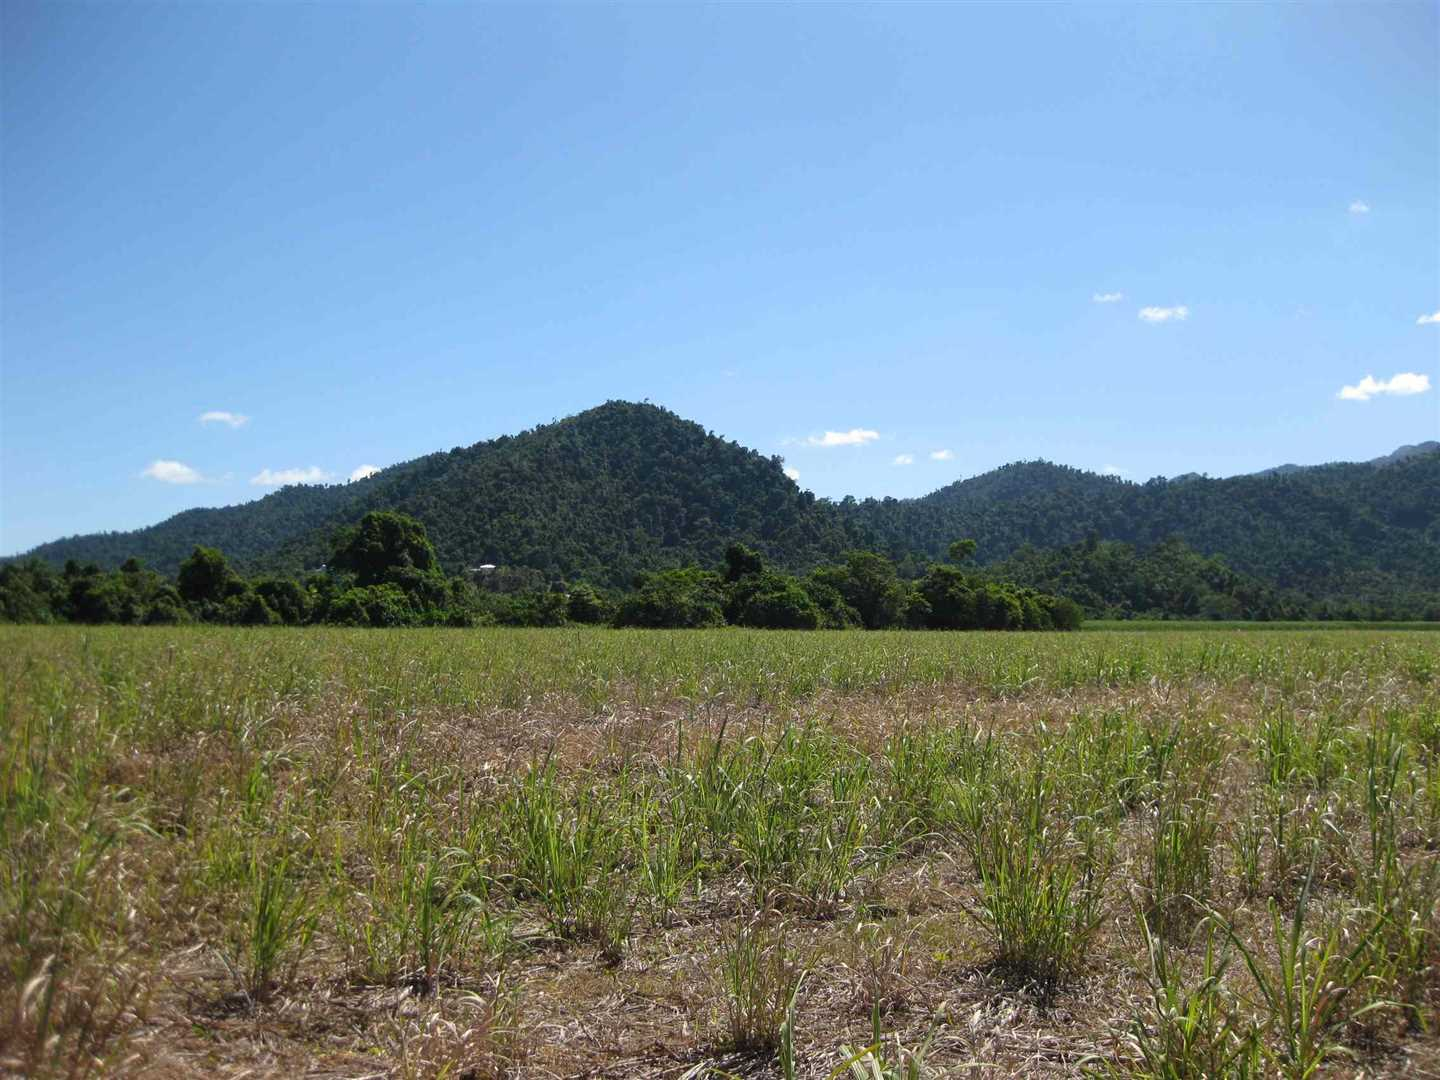 View of part of property showing part of previous fallow cane block (now under cane) and mountain views